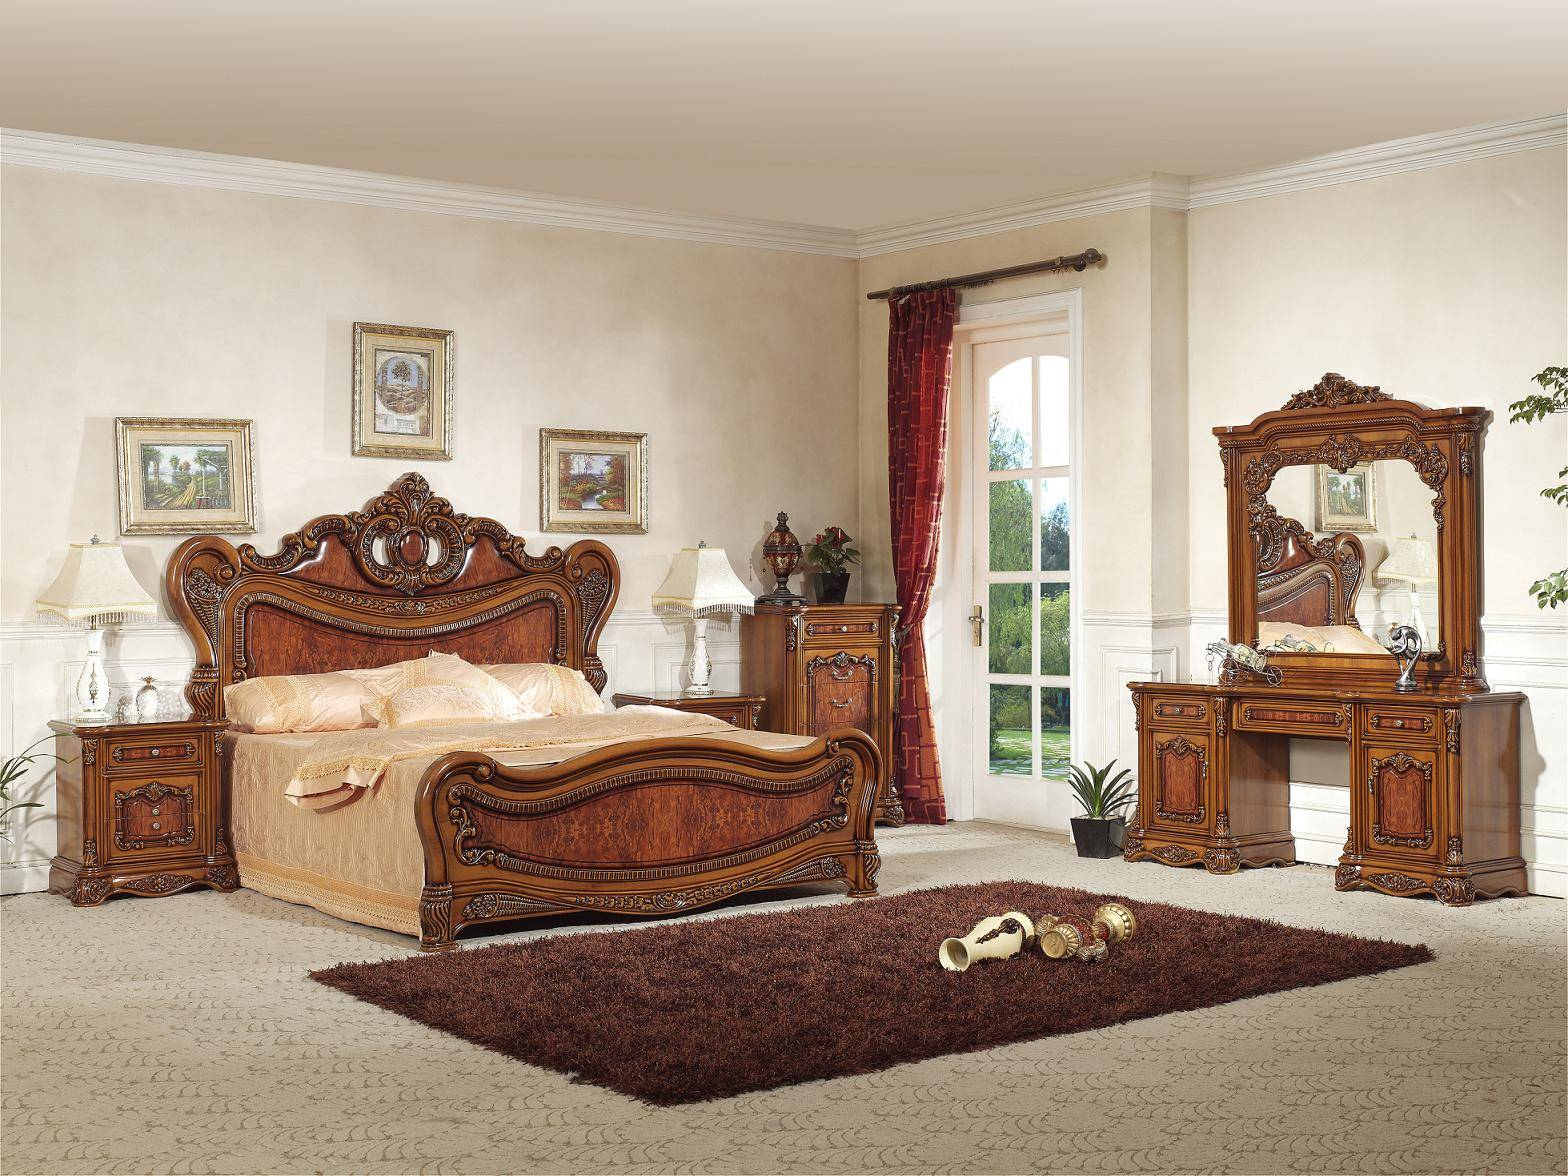 Spanish style bedroom furniture foshan shunde excellence for Spanish style bedroom